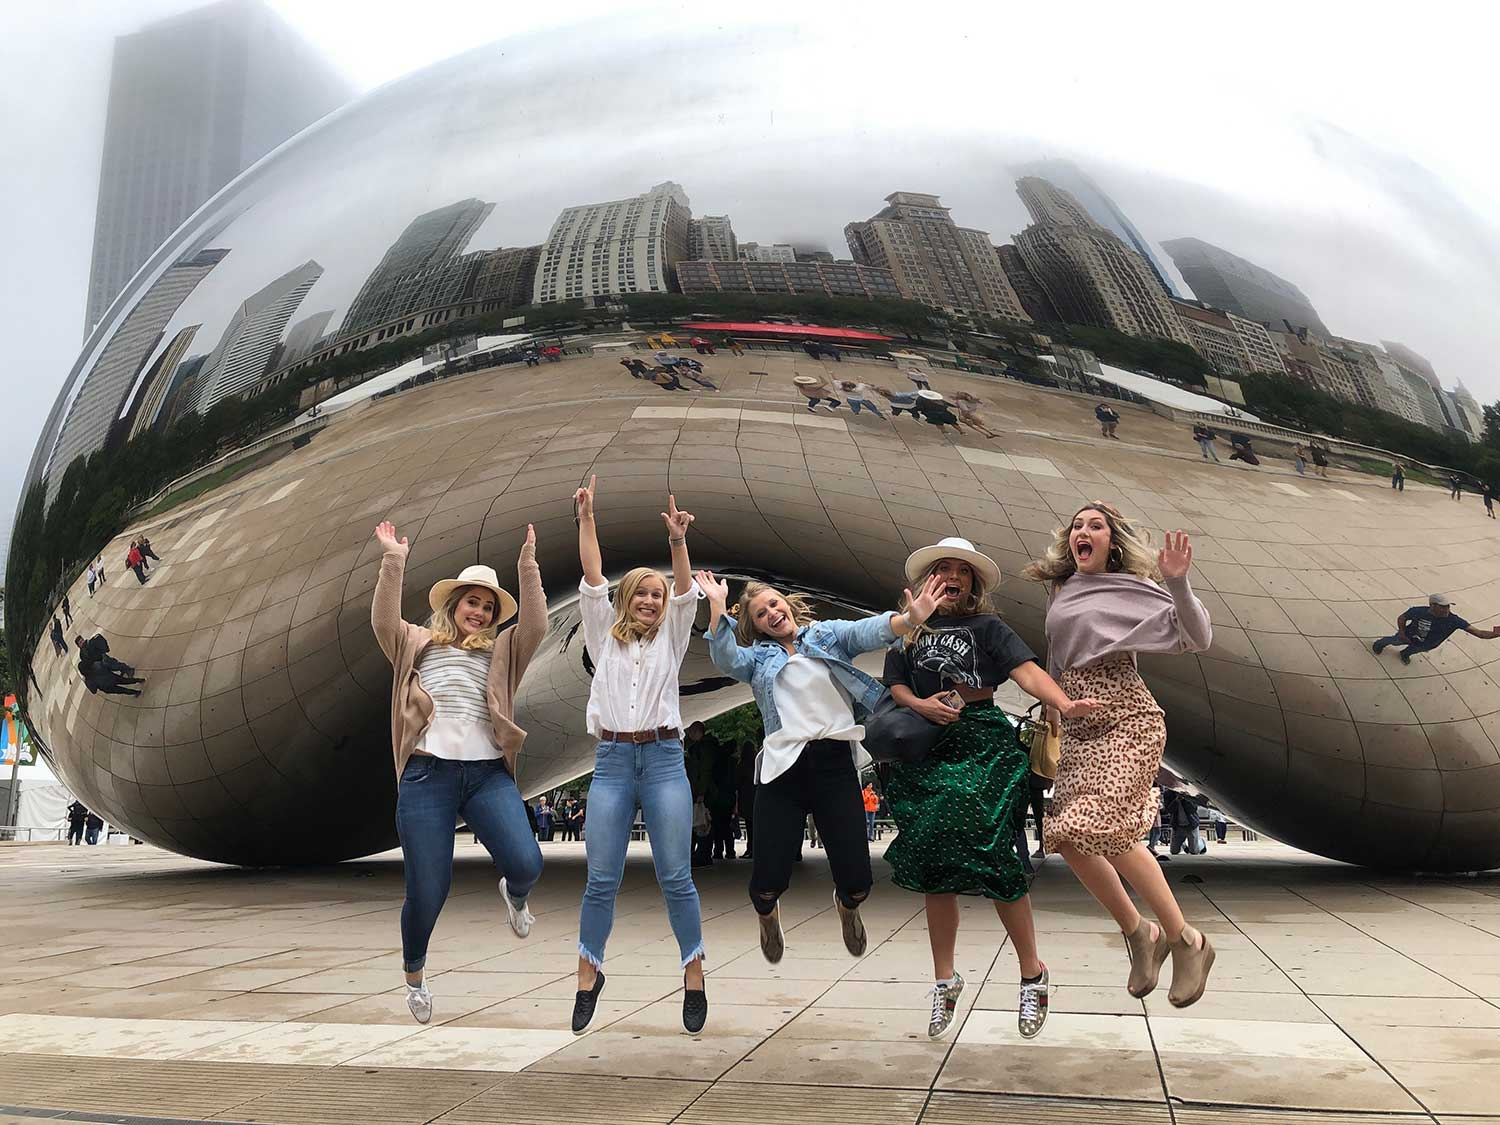 students jump/pose in front of The Bean statue in Chicago